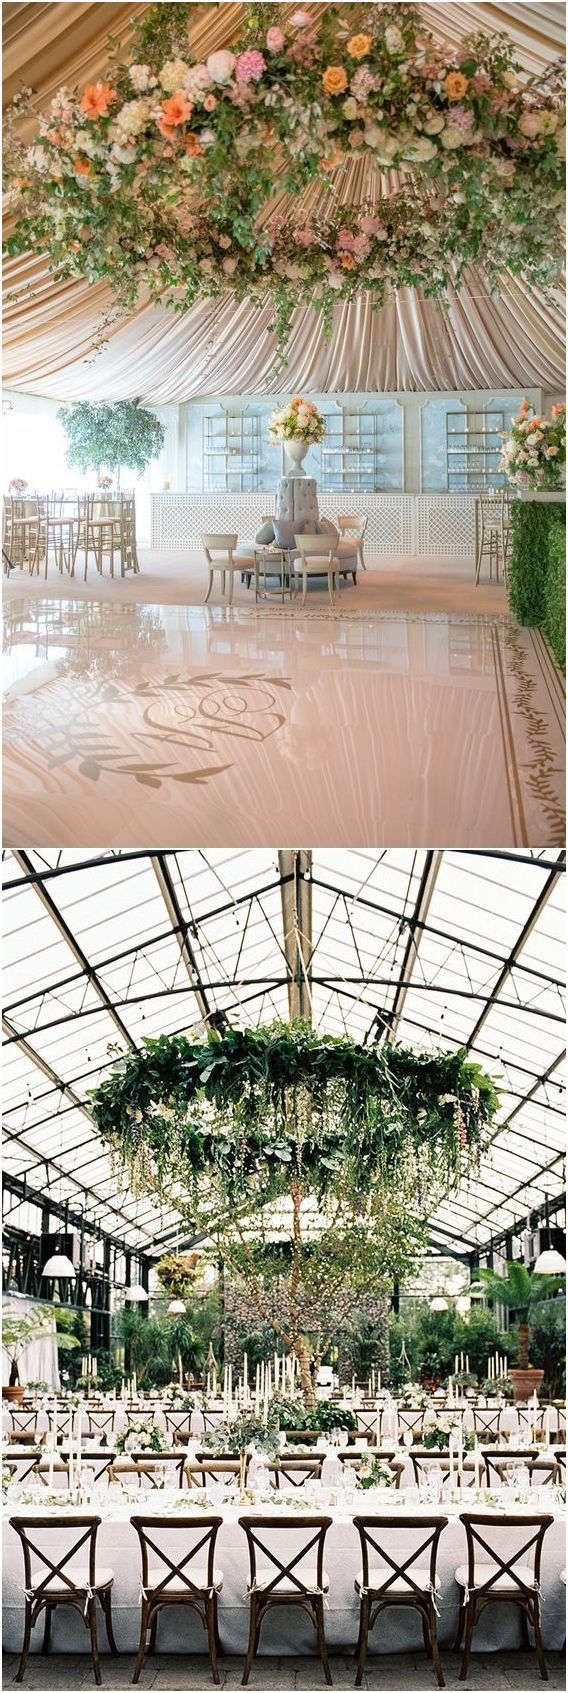 90 Stunning Awesome Wedding Tent Decor Ideas